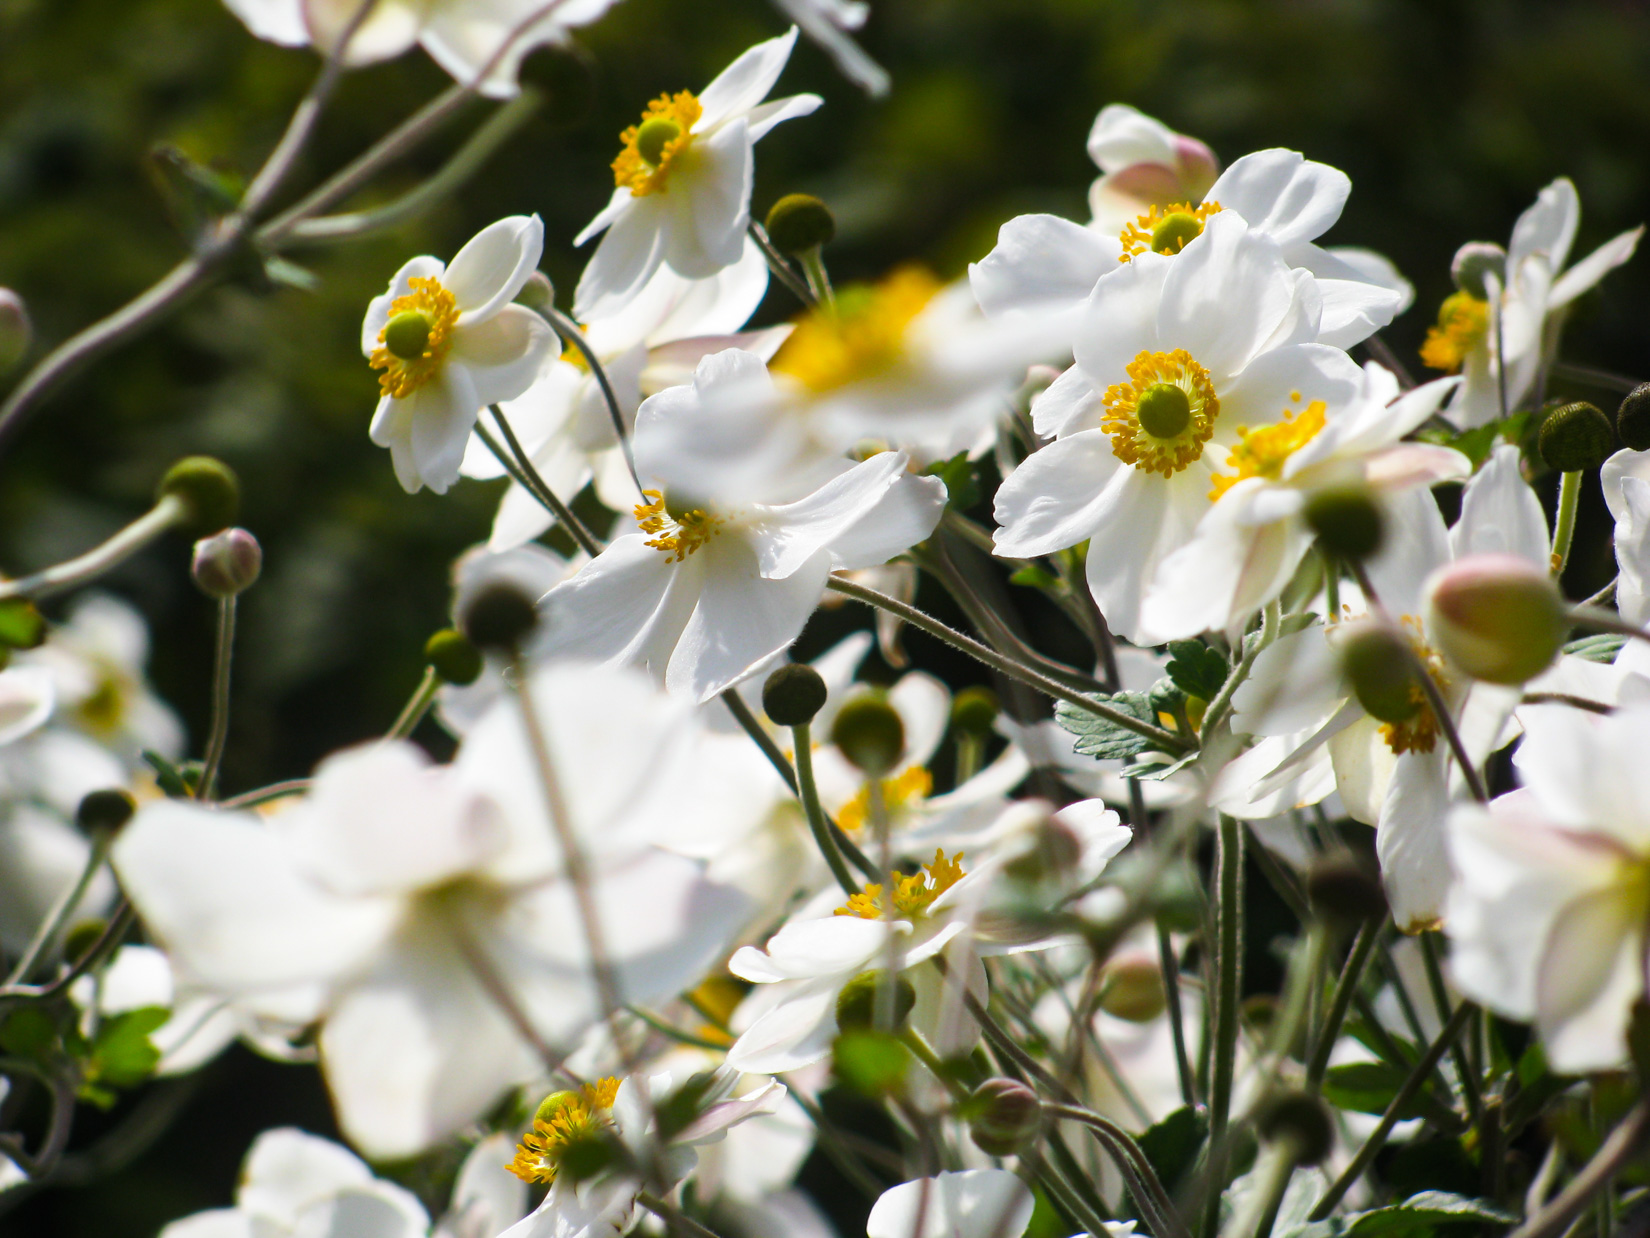 White and Yellow Flowers in Garden